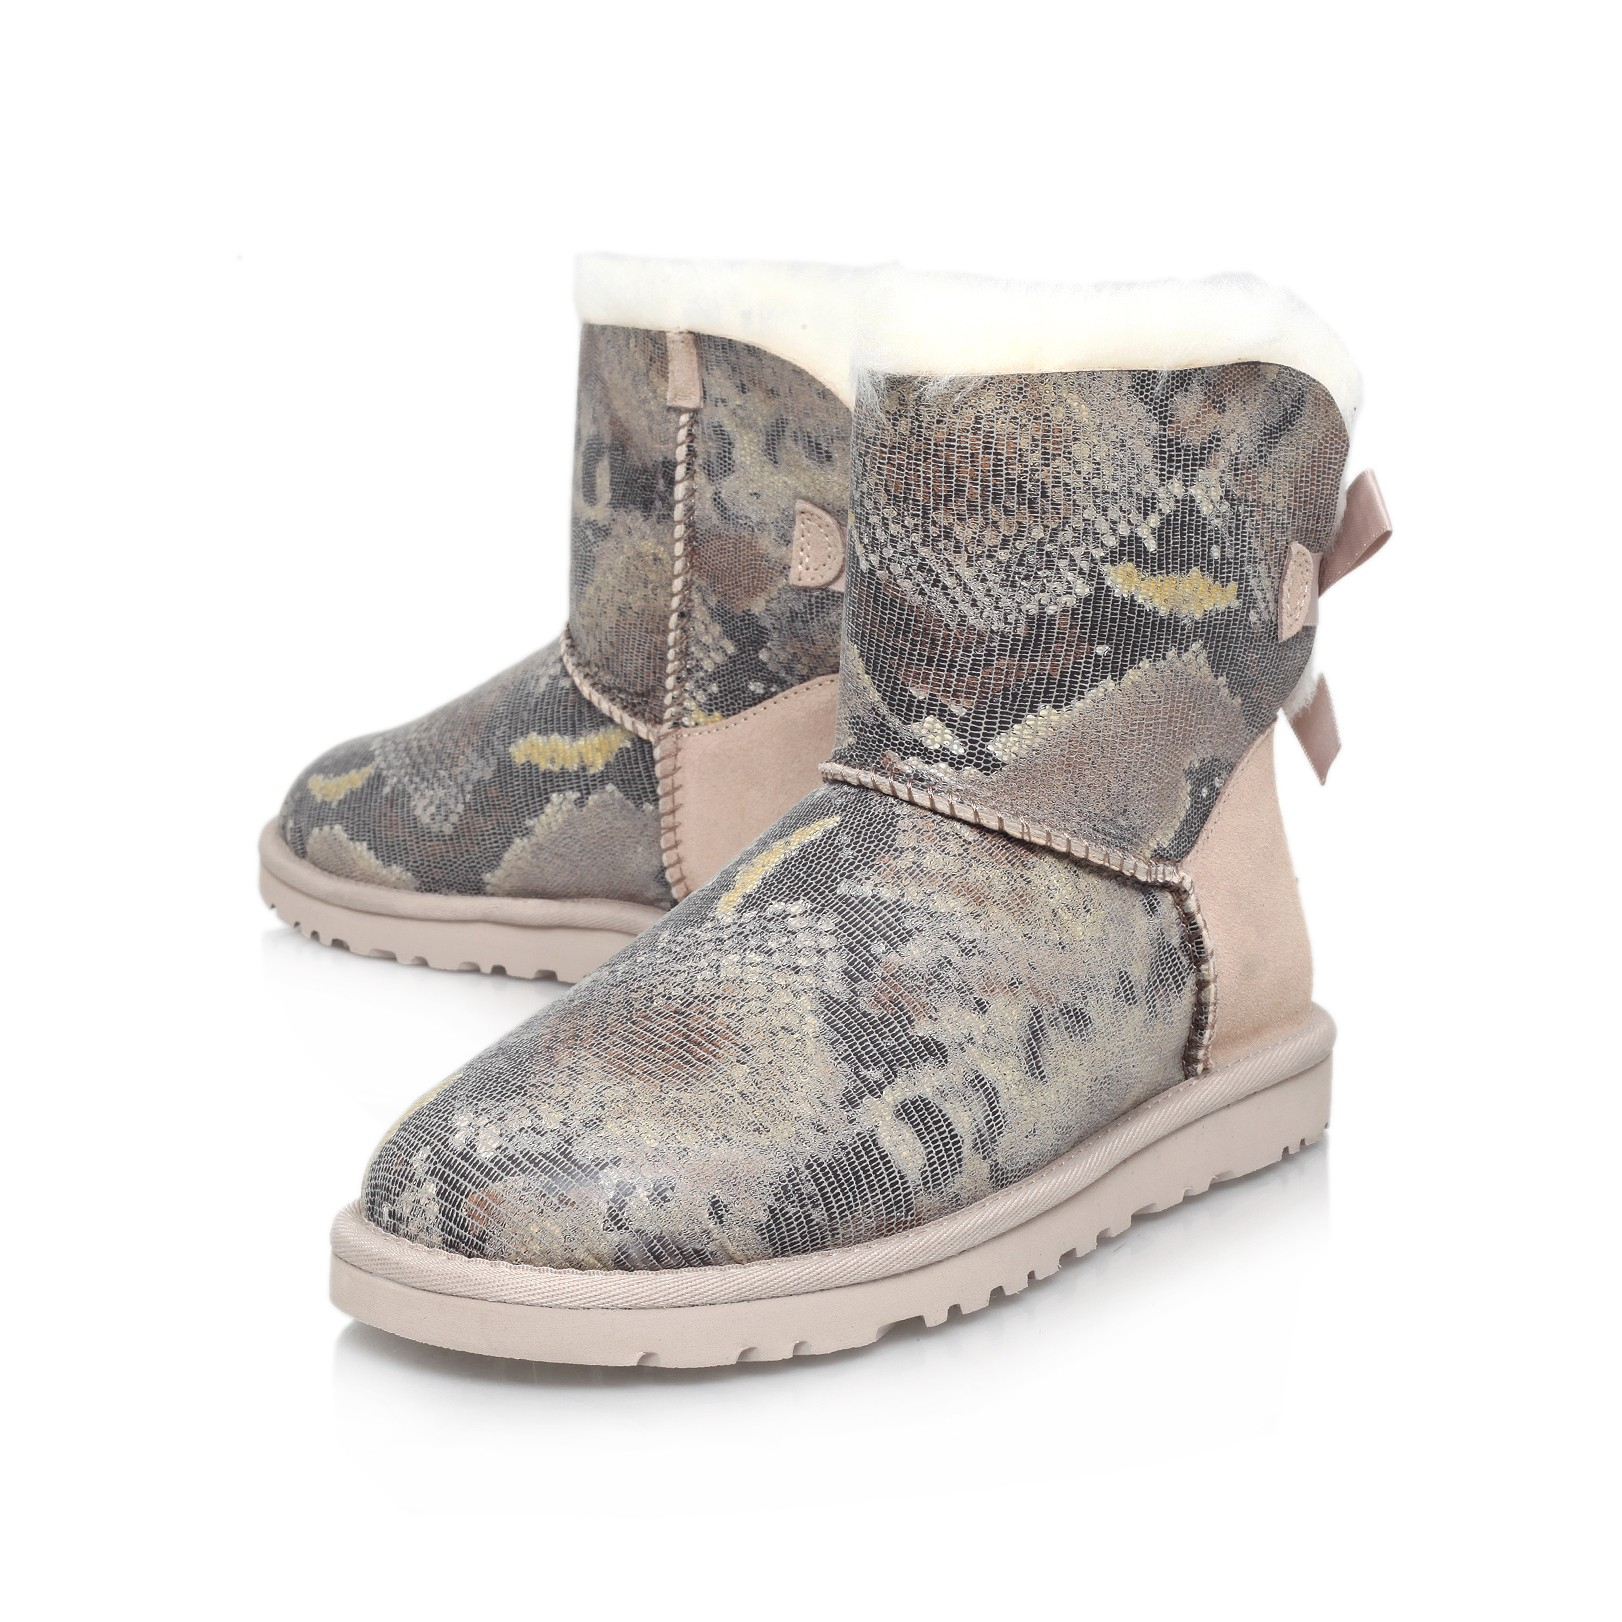 e179b912e60 new zealand ugg mini bailey bow snake b7dac 810b5